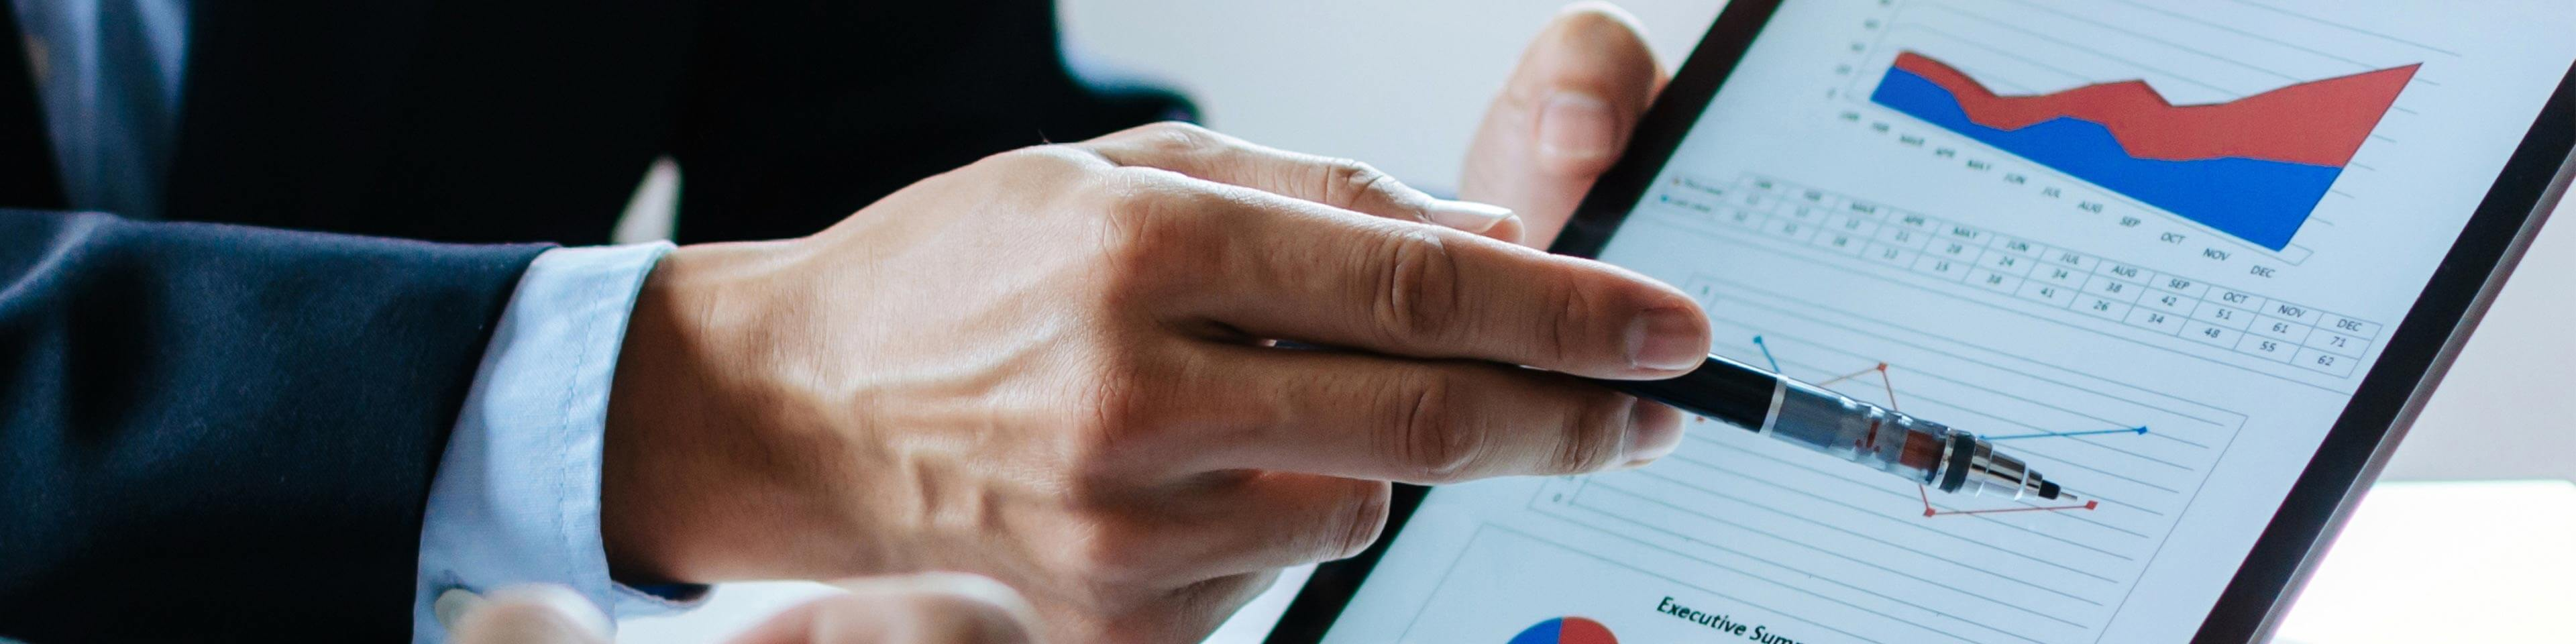 man pointing at a data analytics report in a tablet